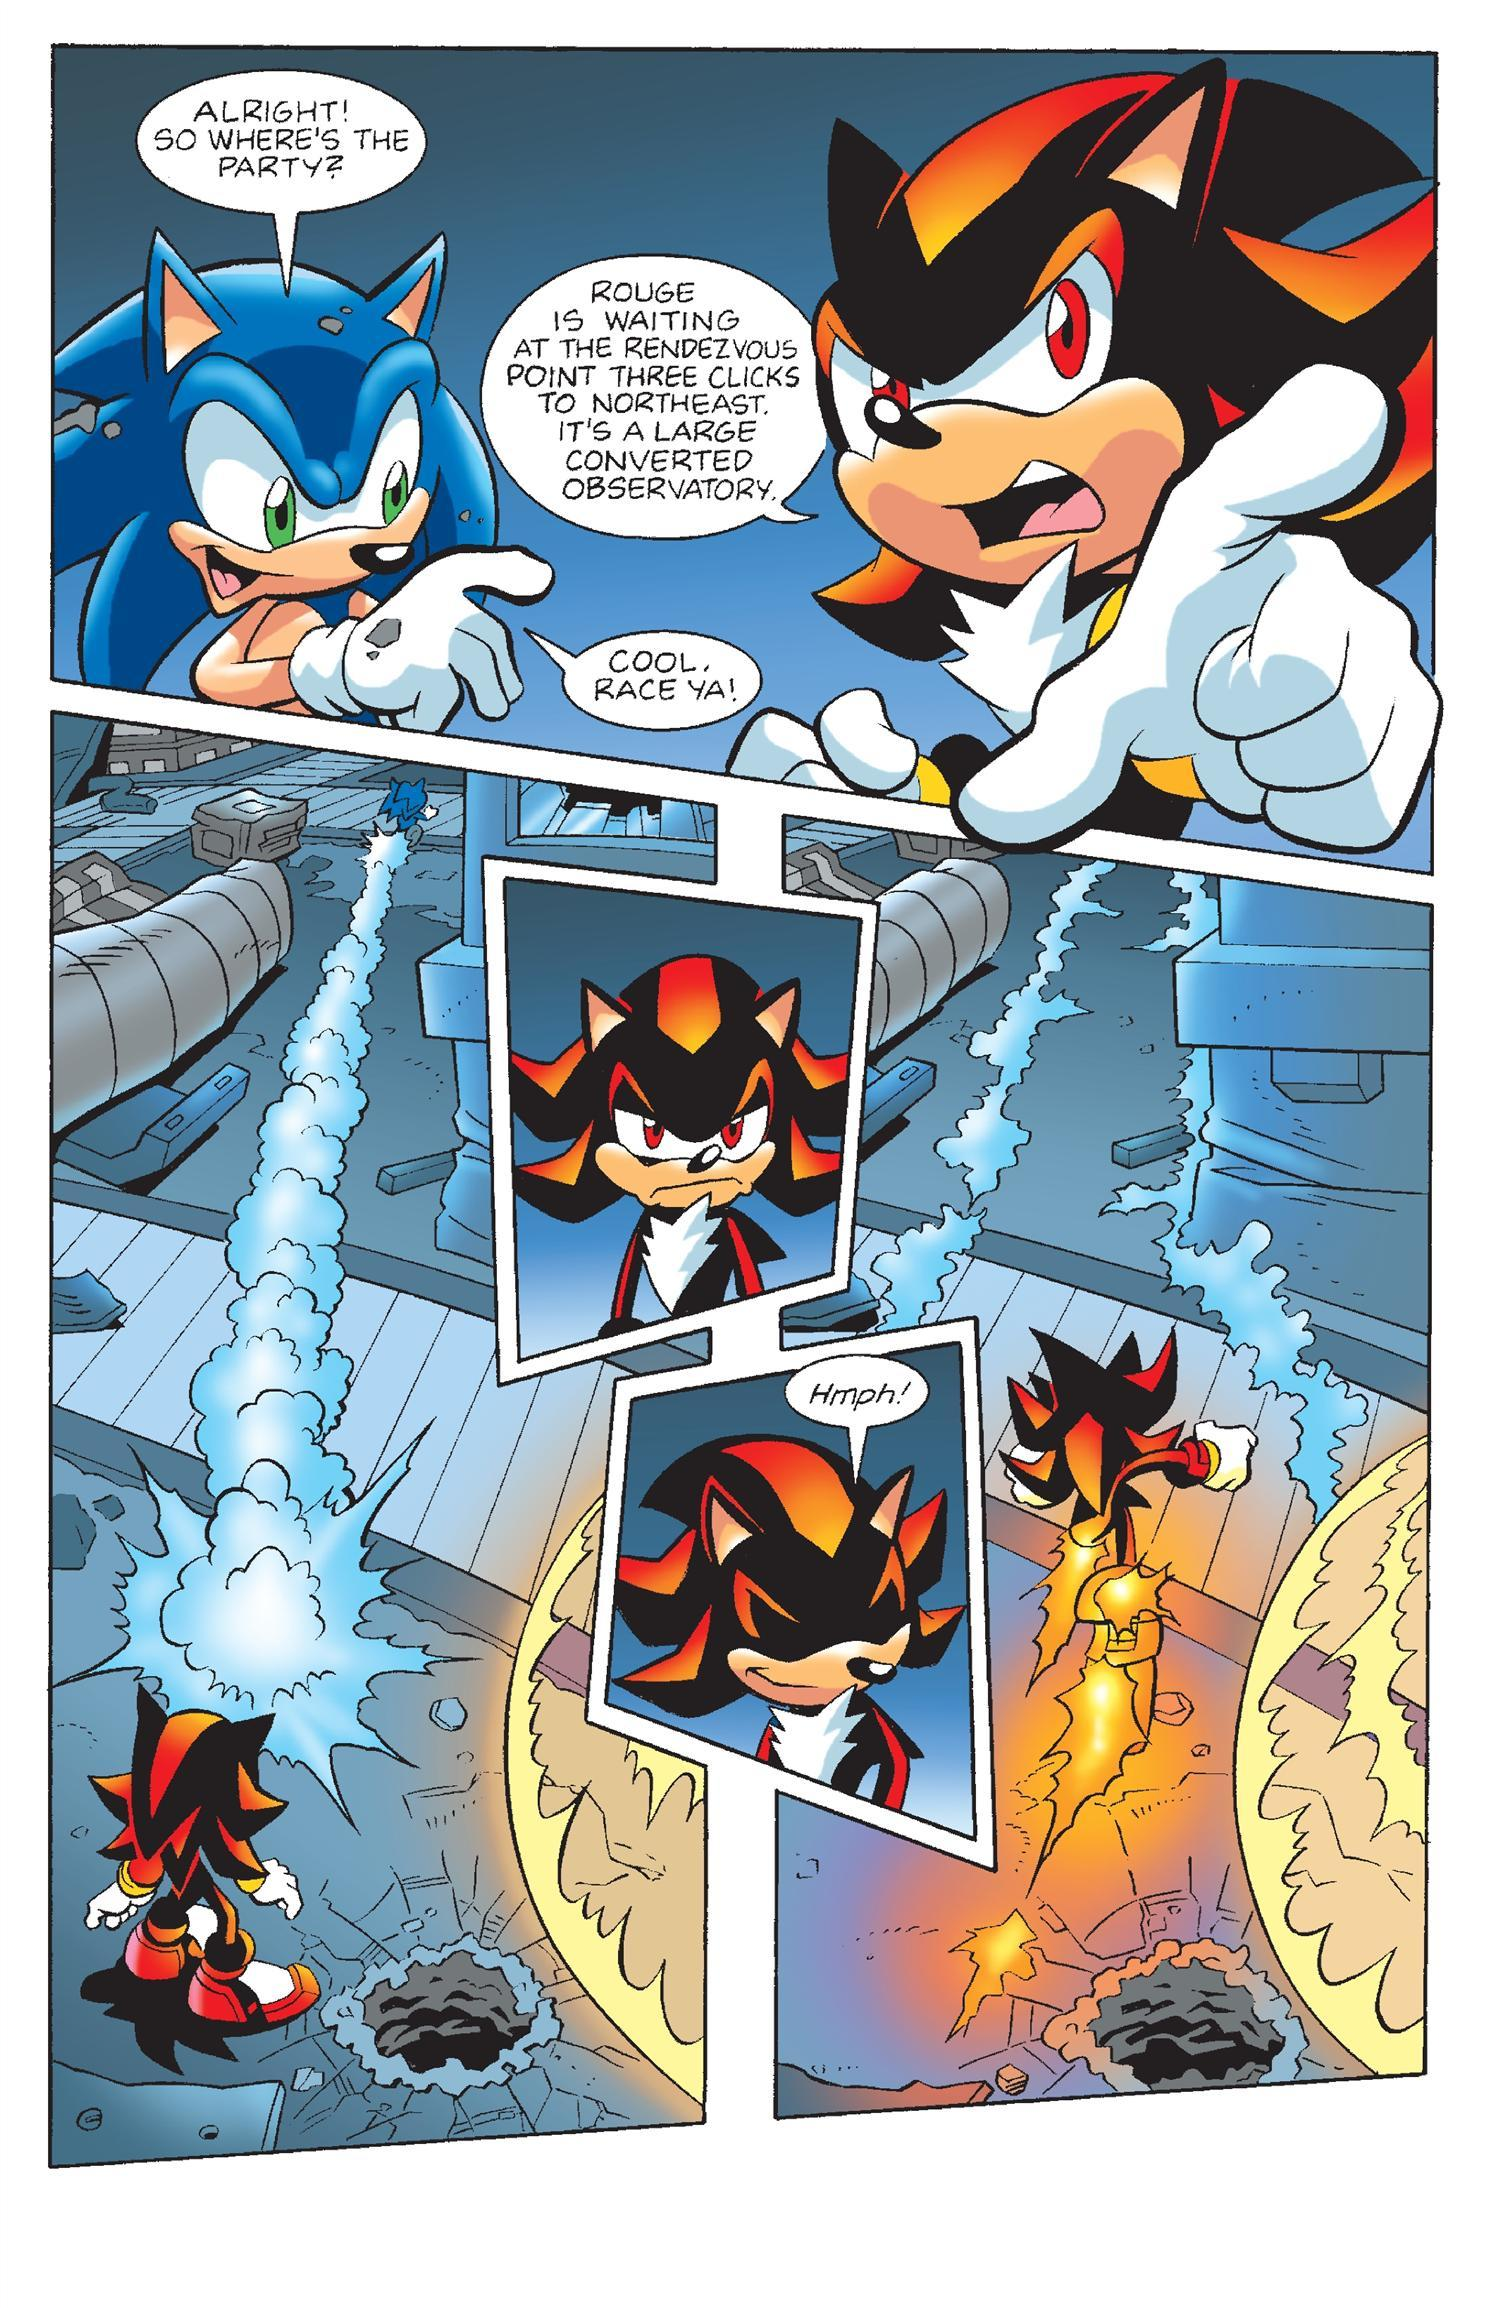 http://img1.wikia.nocookie.net/__cb20140316204914/sonic/images/7/71/Su2_scan5.jpg